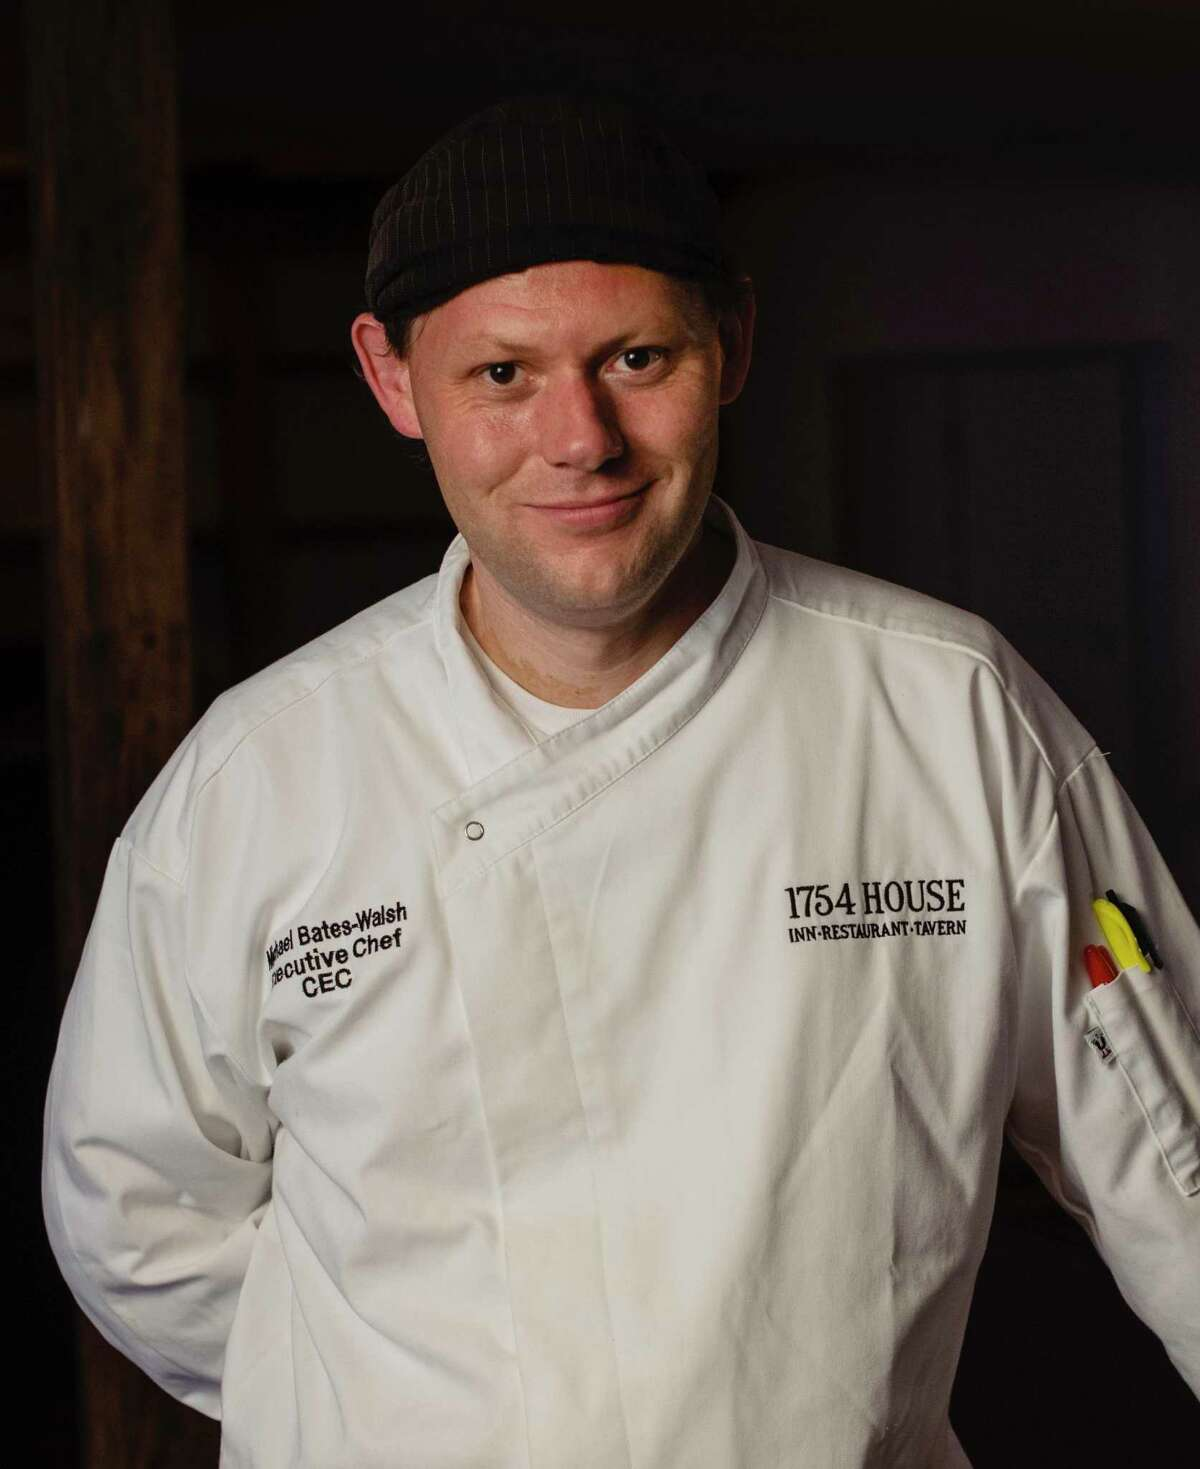 Michael Bates-Walsh is the chef owner of the 1754 House in Woodbury. The menu at 1754 House comprises what Bates-Walsh calls